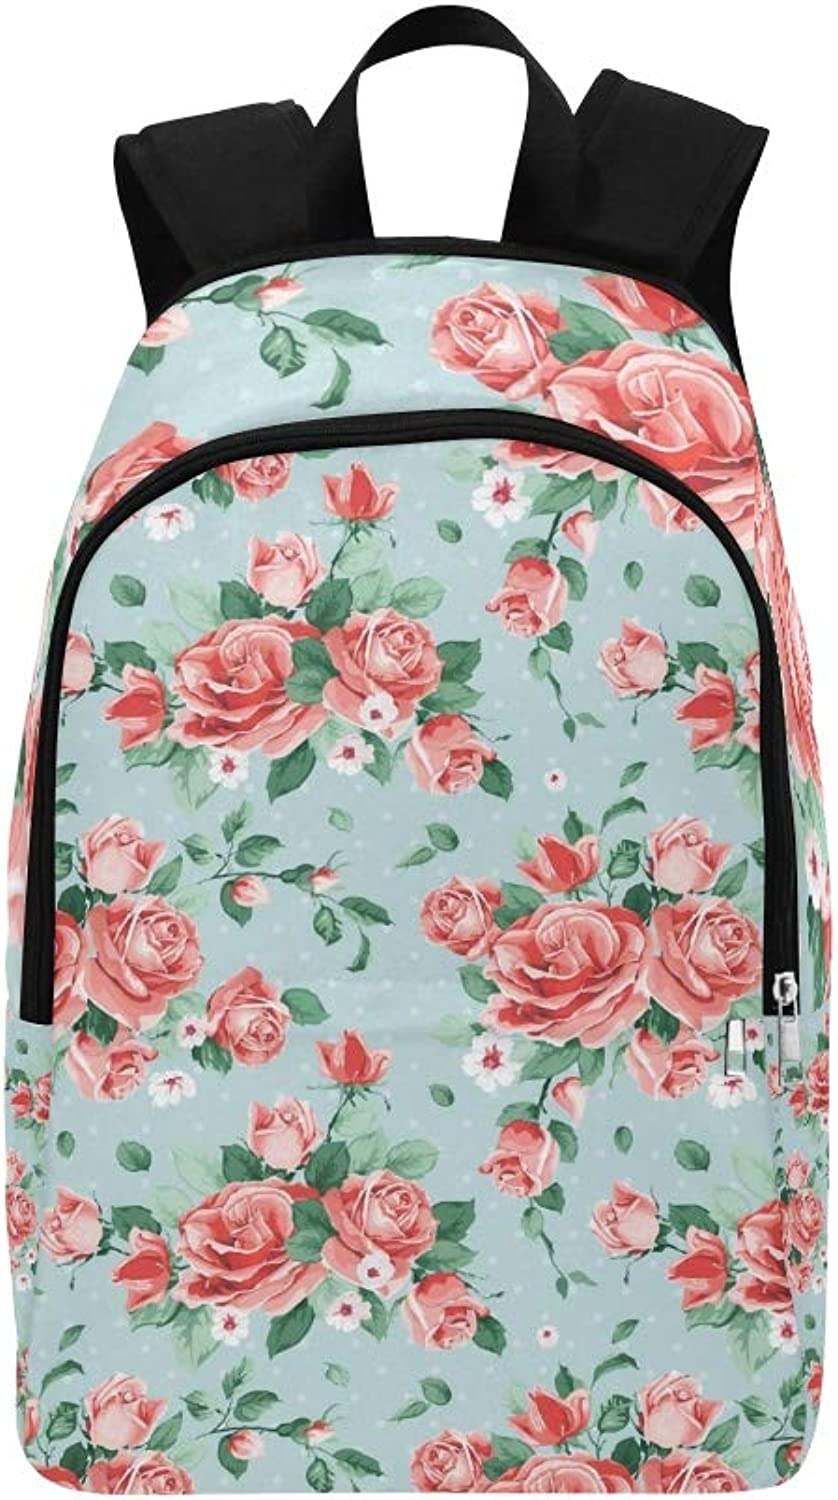 Delicate Bunch Spring Flowers Casual Daypack Travel Bag College School Backpack for Mens and Women